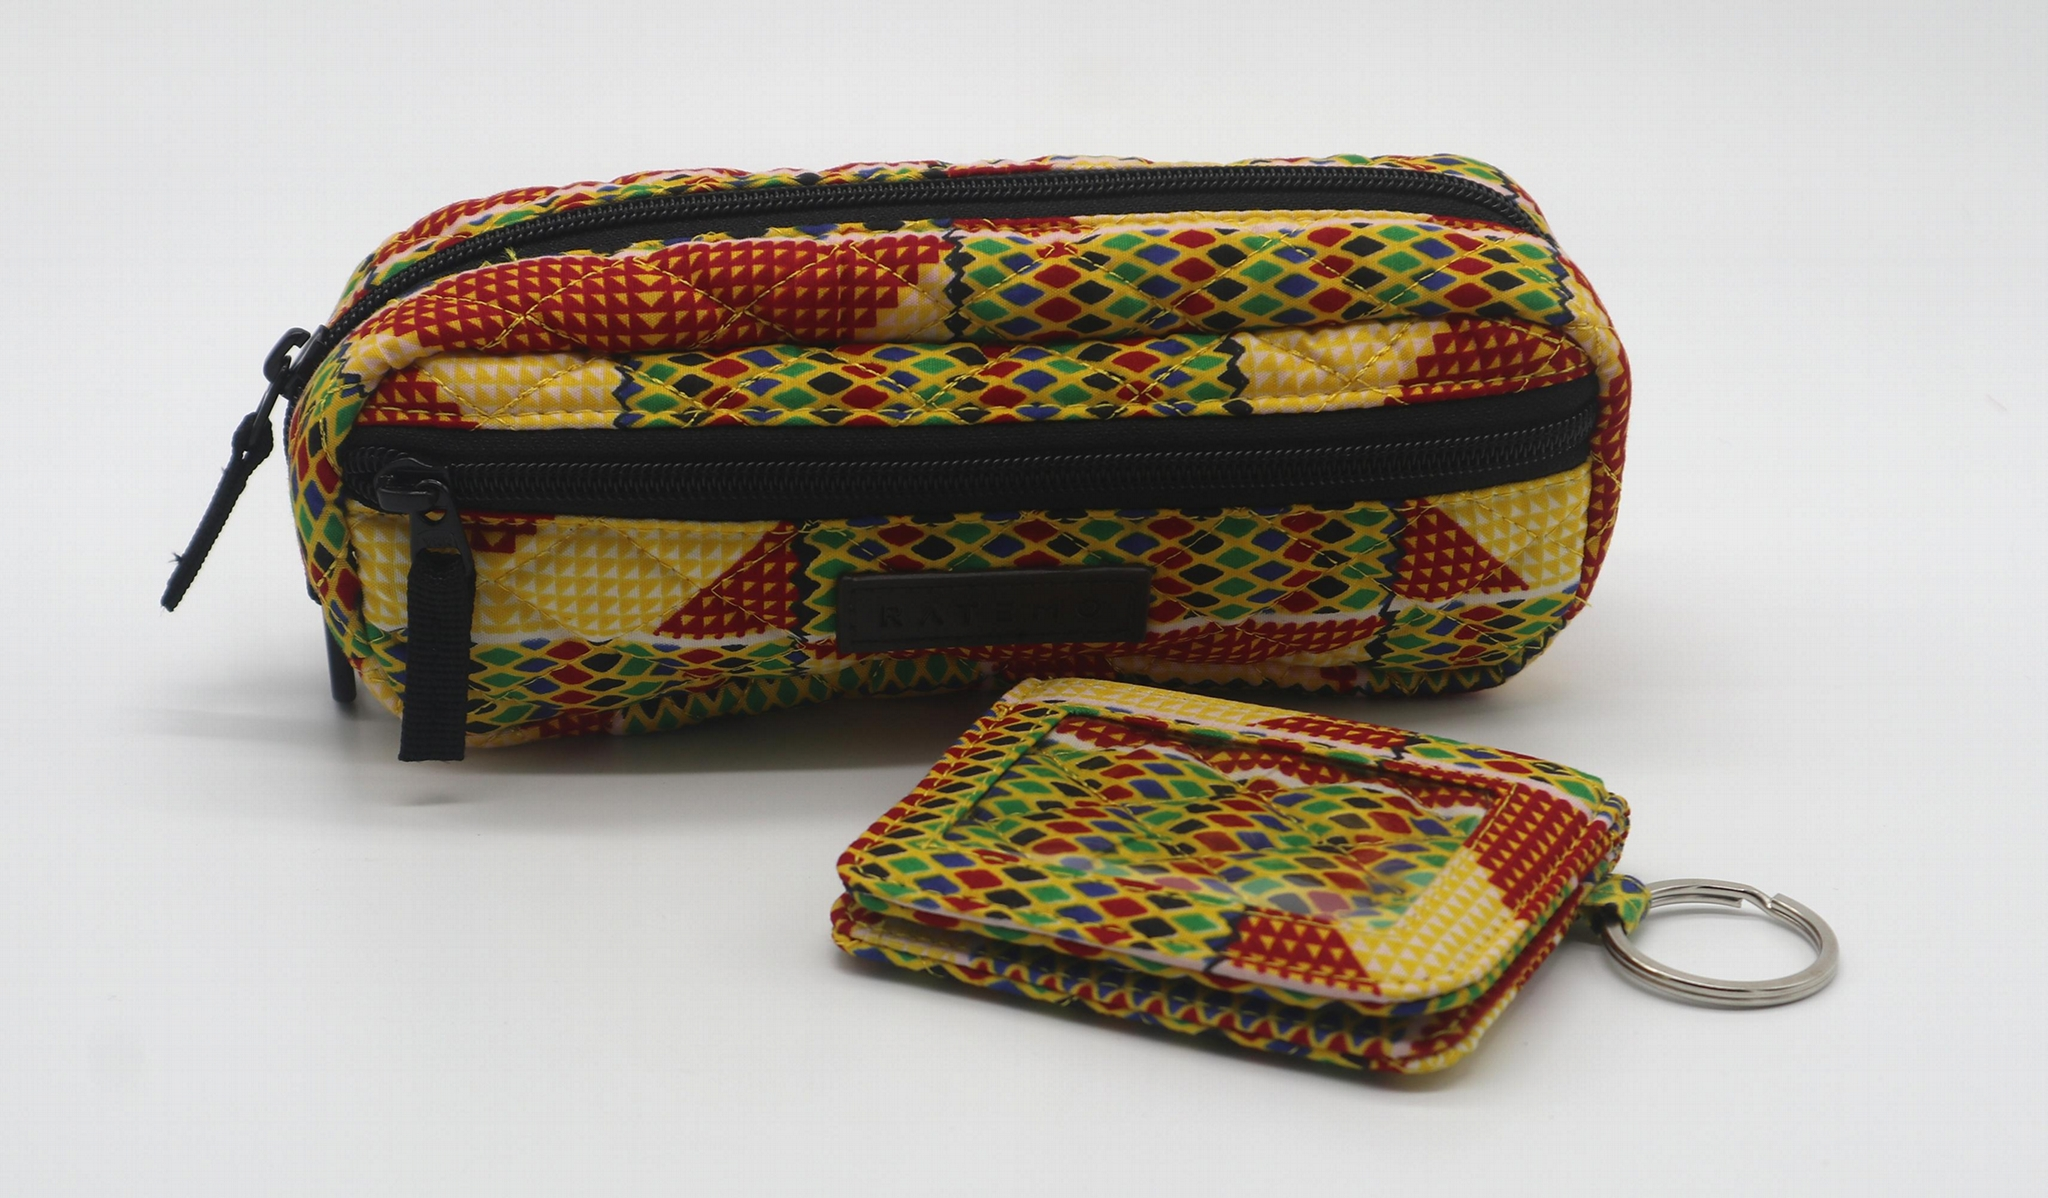 Ankara printed cotton quilted pencil case with double zippers 6